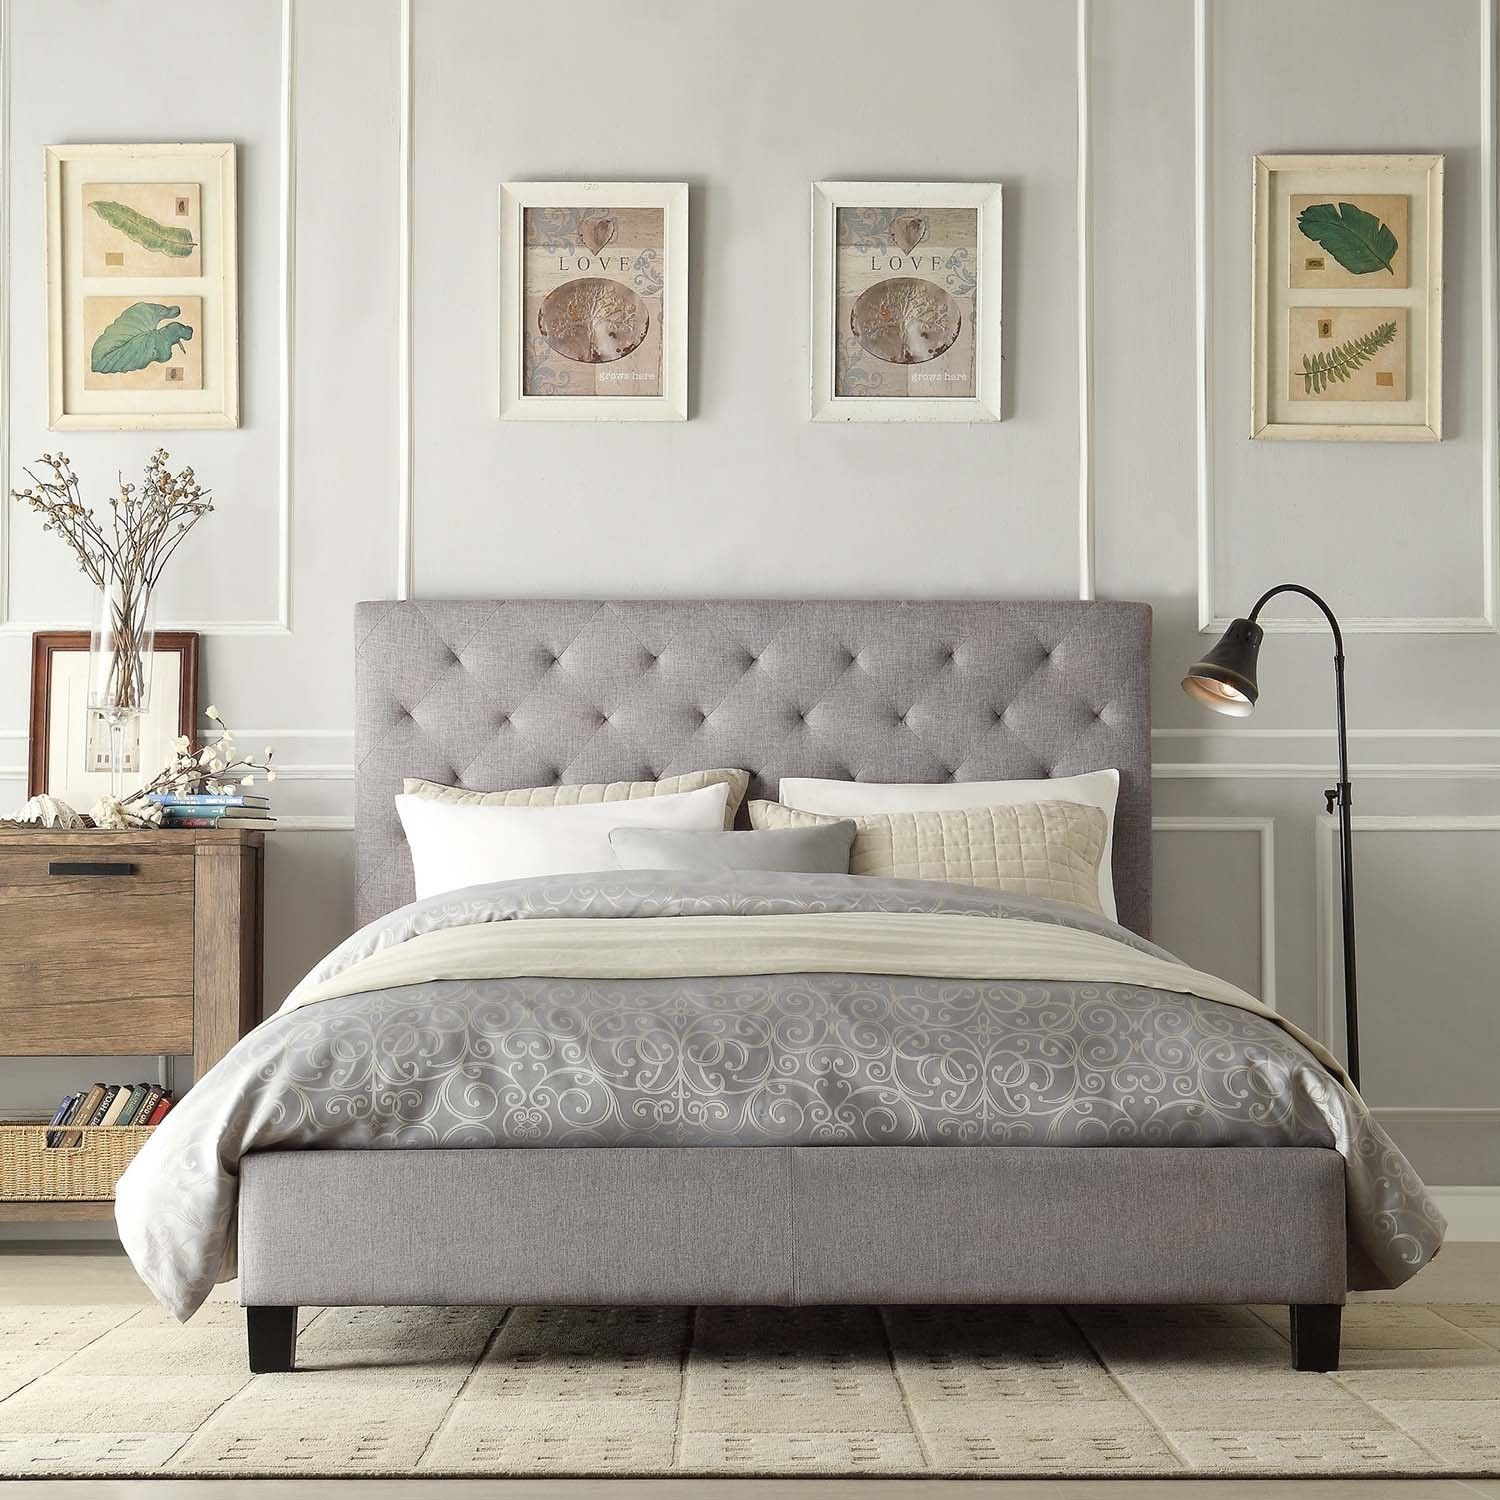 This elegant platform bed features a buttontufted